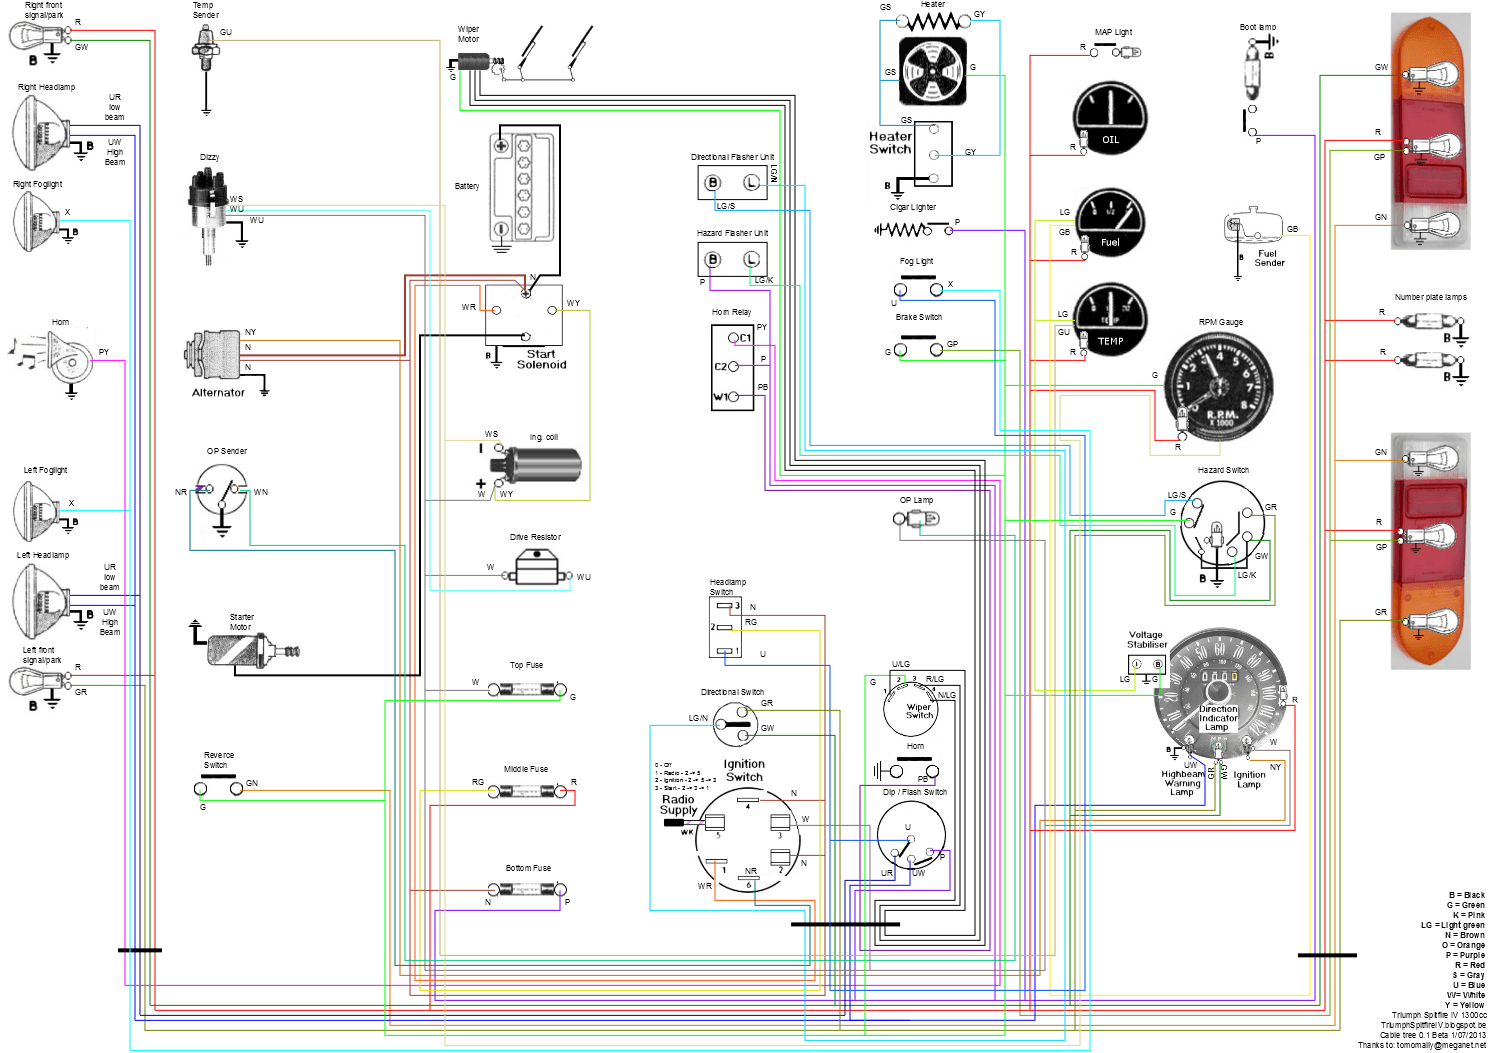 Spitfire MkIV Wiring Diagram How To Library The Triumph Experience